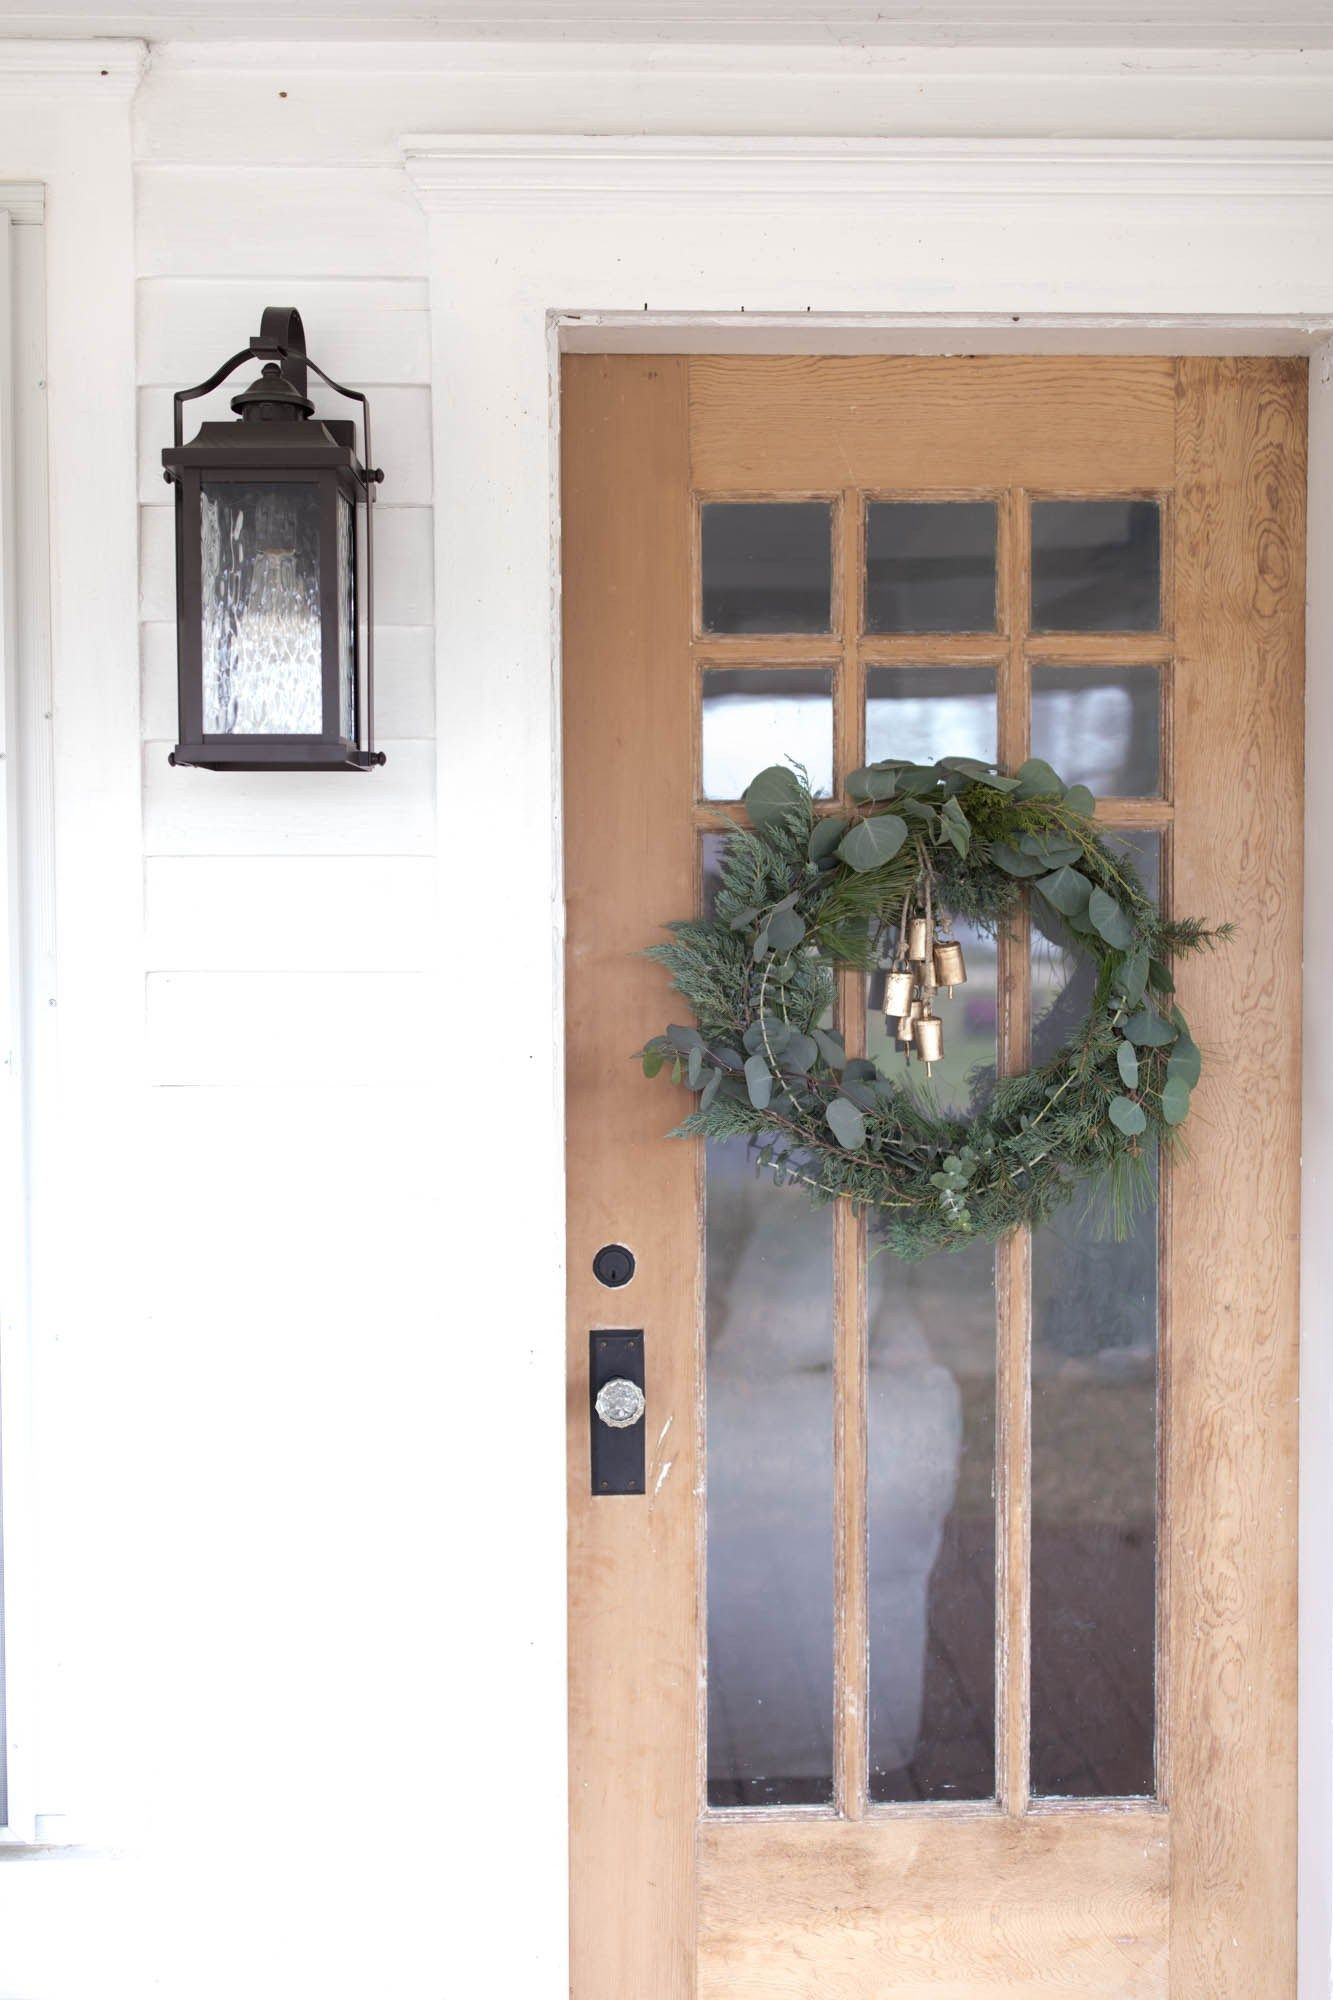 farmhouse christmas front porch decor neutral colors natural elements fresh greenery and red grain sack create a cozy space for the holiday season - Christmas Front Porch Decorations Pinterest